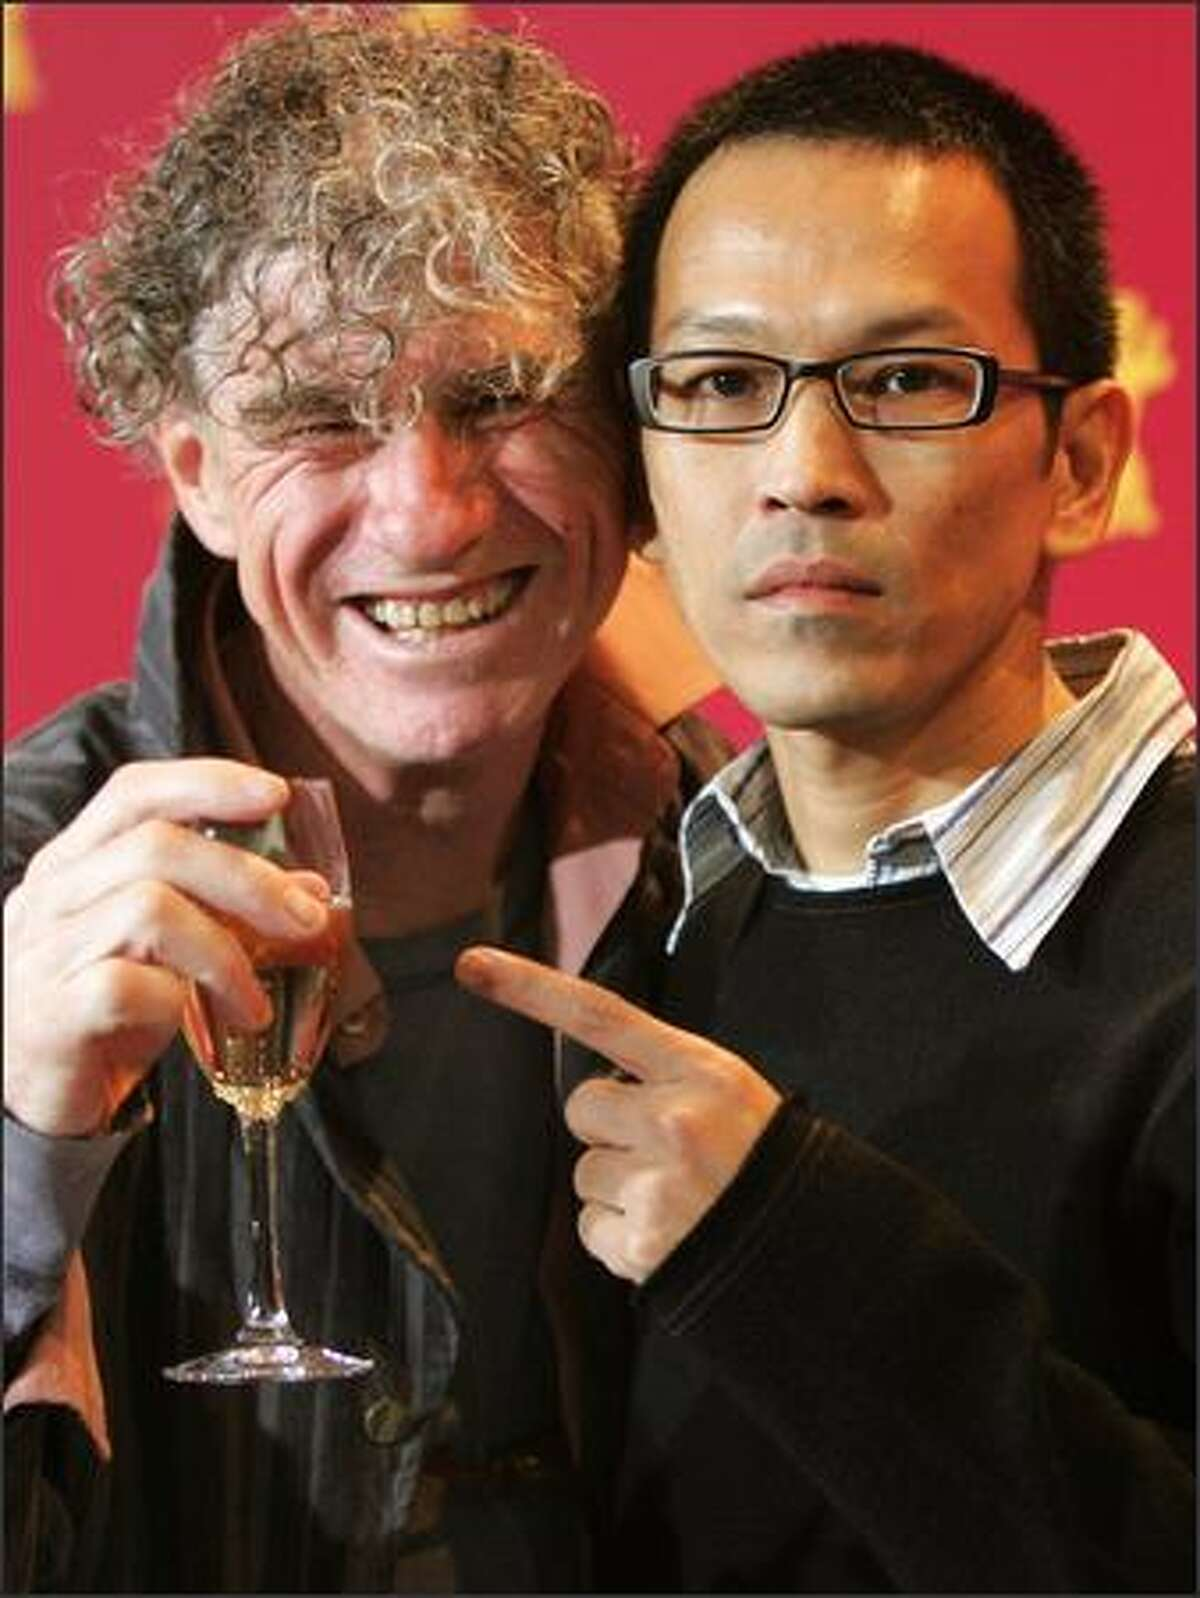 The surgeon general has not warned yet that consumption of cheap champagne can cause curly hair. But Thai director Pen-ek Ratanaruang alerts the international media at the Berlin Film Festival to this burgeoning problem by pointing to the suspect bubbly flute drained by Aussie photo director Christopher Doyle.